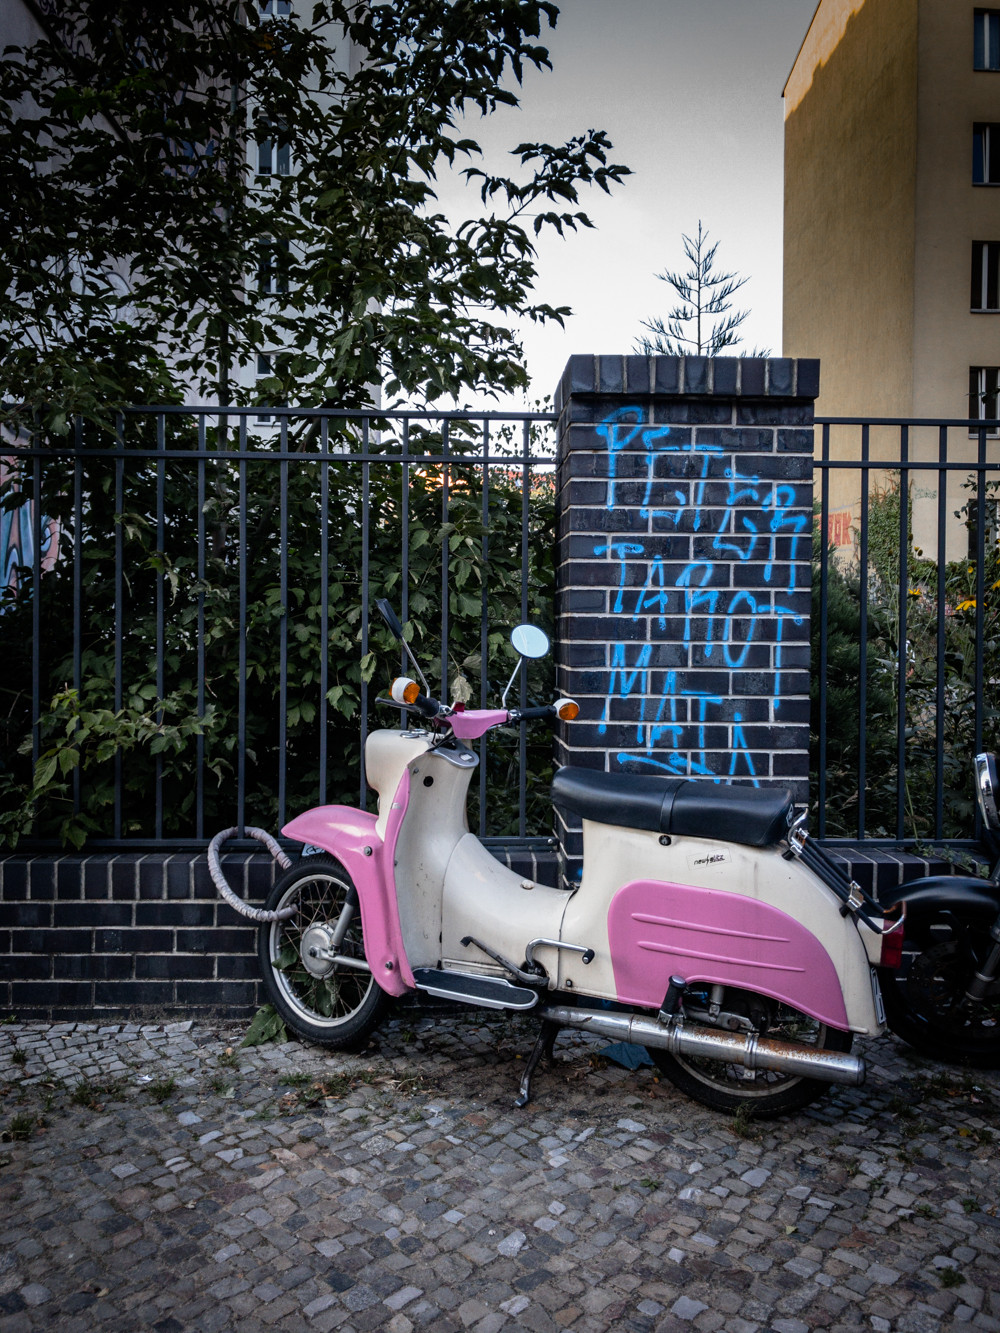 Schwalbe in Farbe (pink)